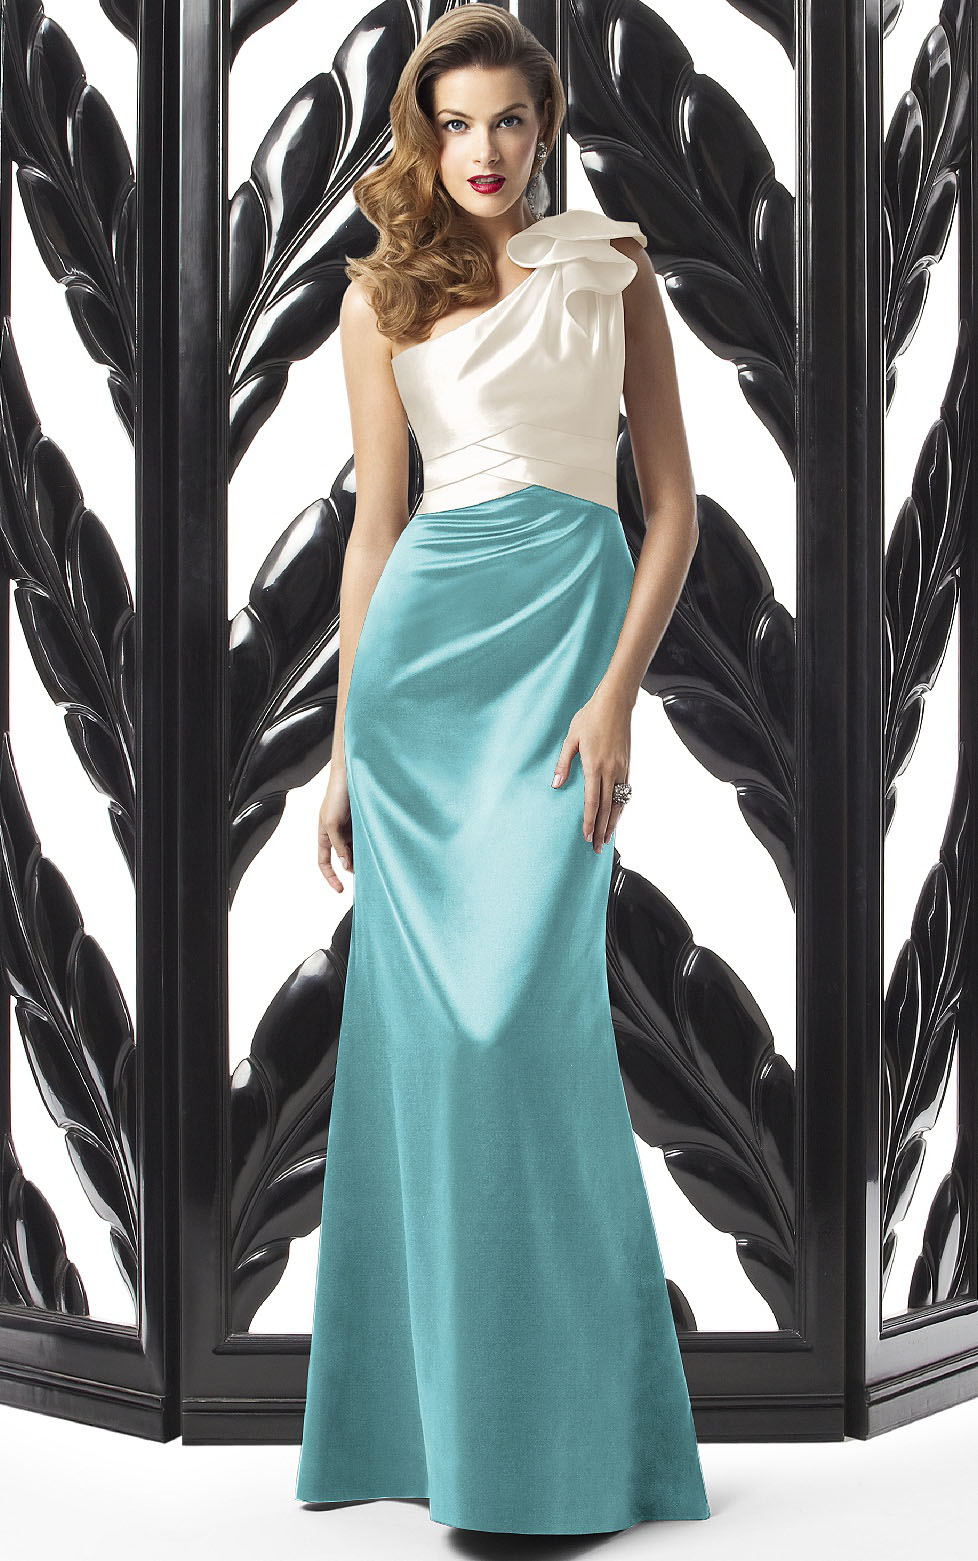 http://www.aislestyle.co.uk/zipper-one-shoulder-empire-sleeveless-aline-bridesmaid-dresses-p-5031.html